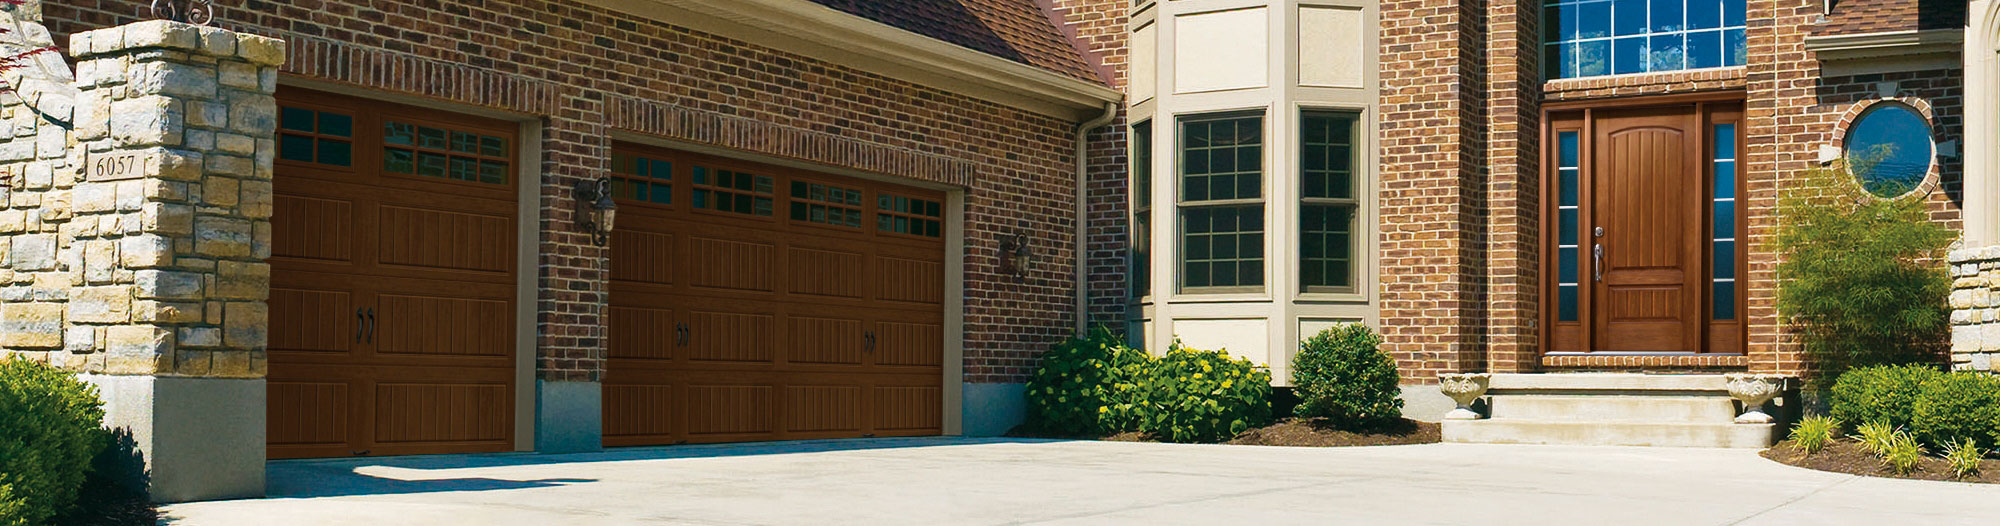 Liftmaster residential jackshaft openers distribudoors for Garage door visualizer